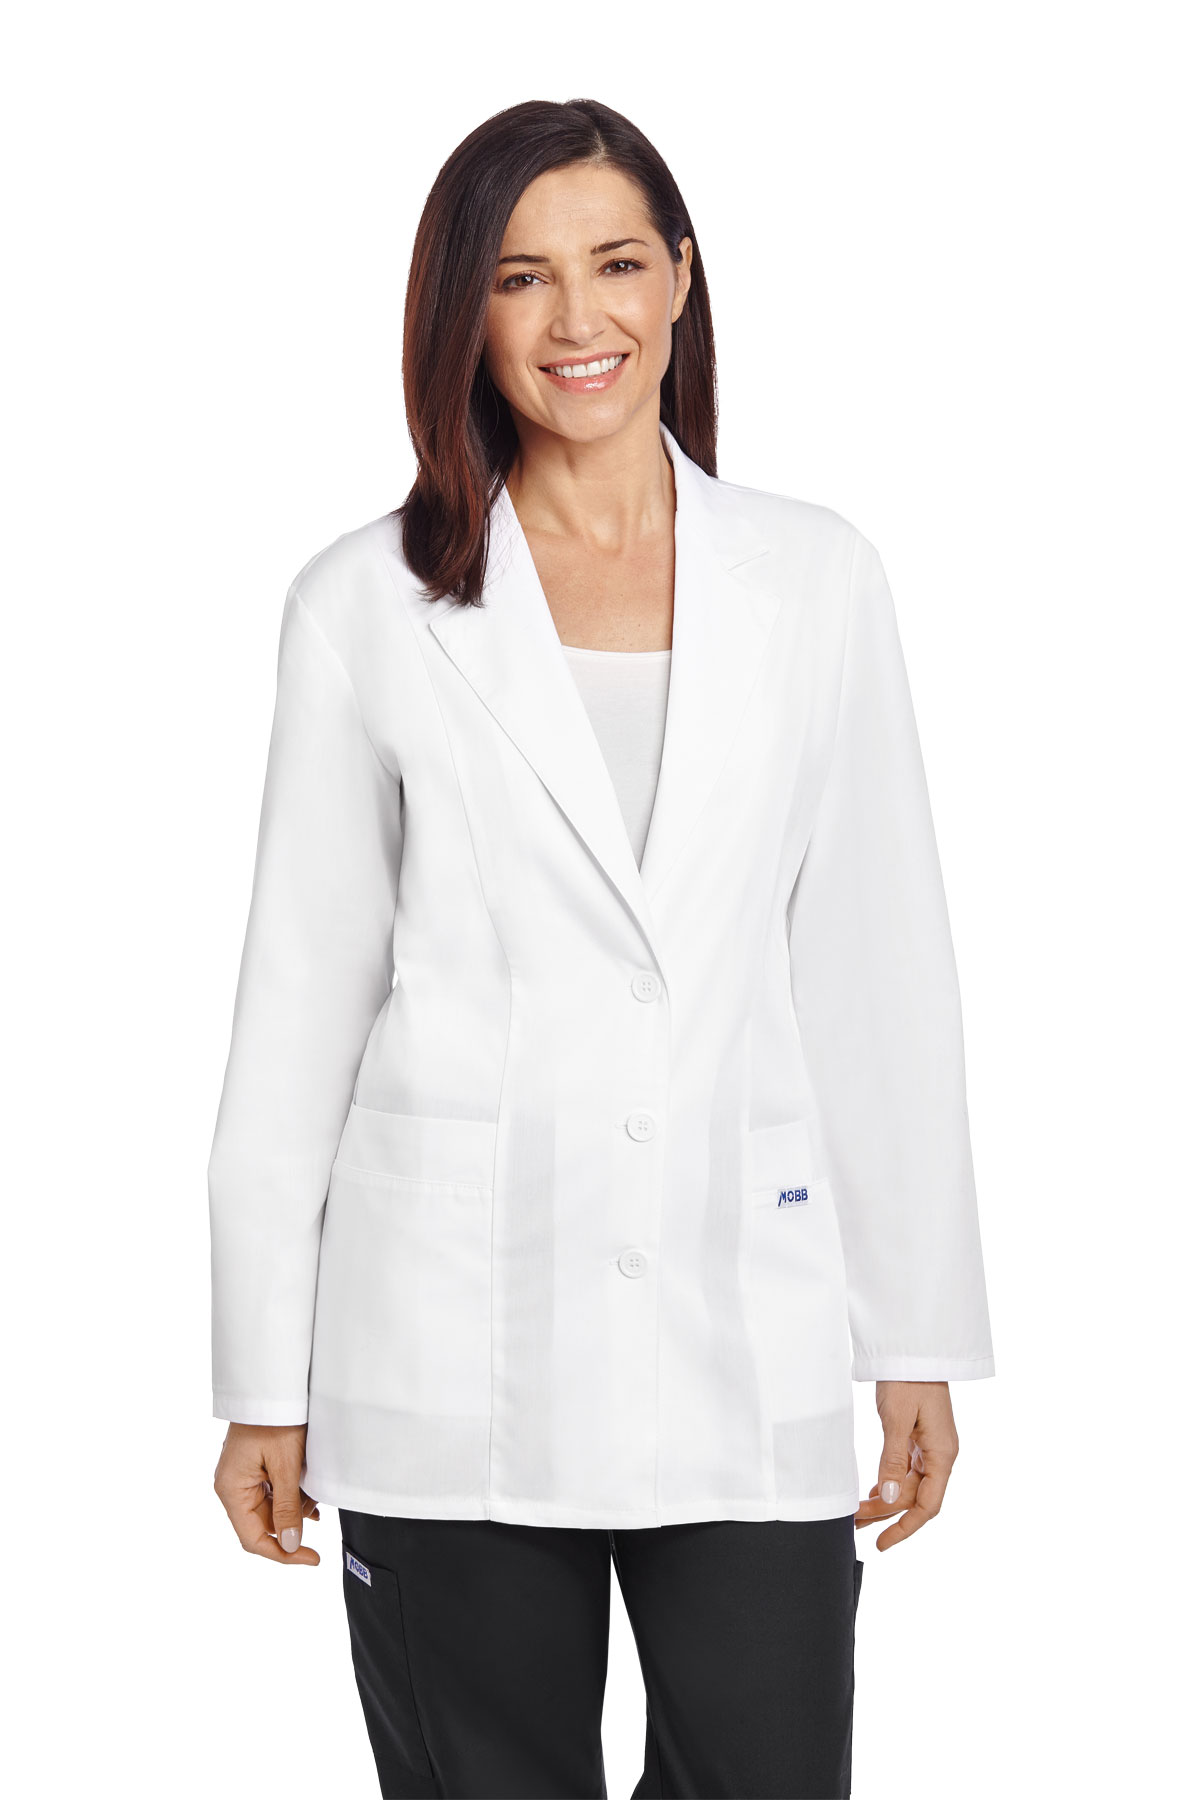 LabCoat-Mob-L390